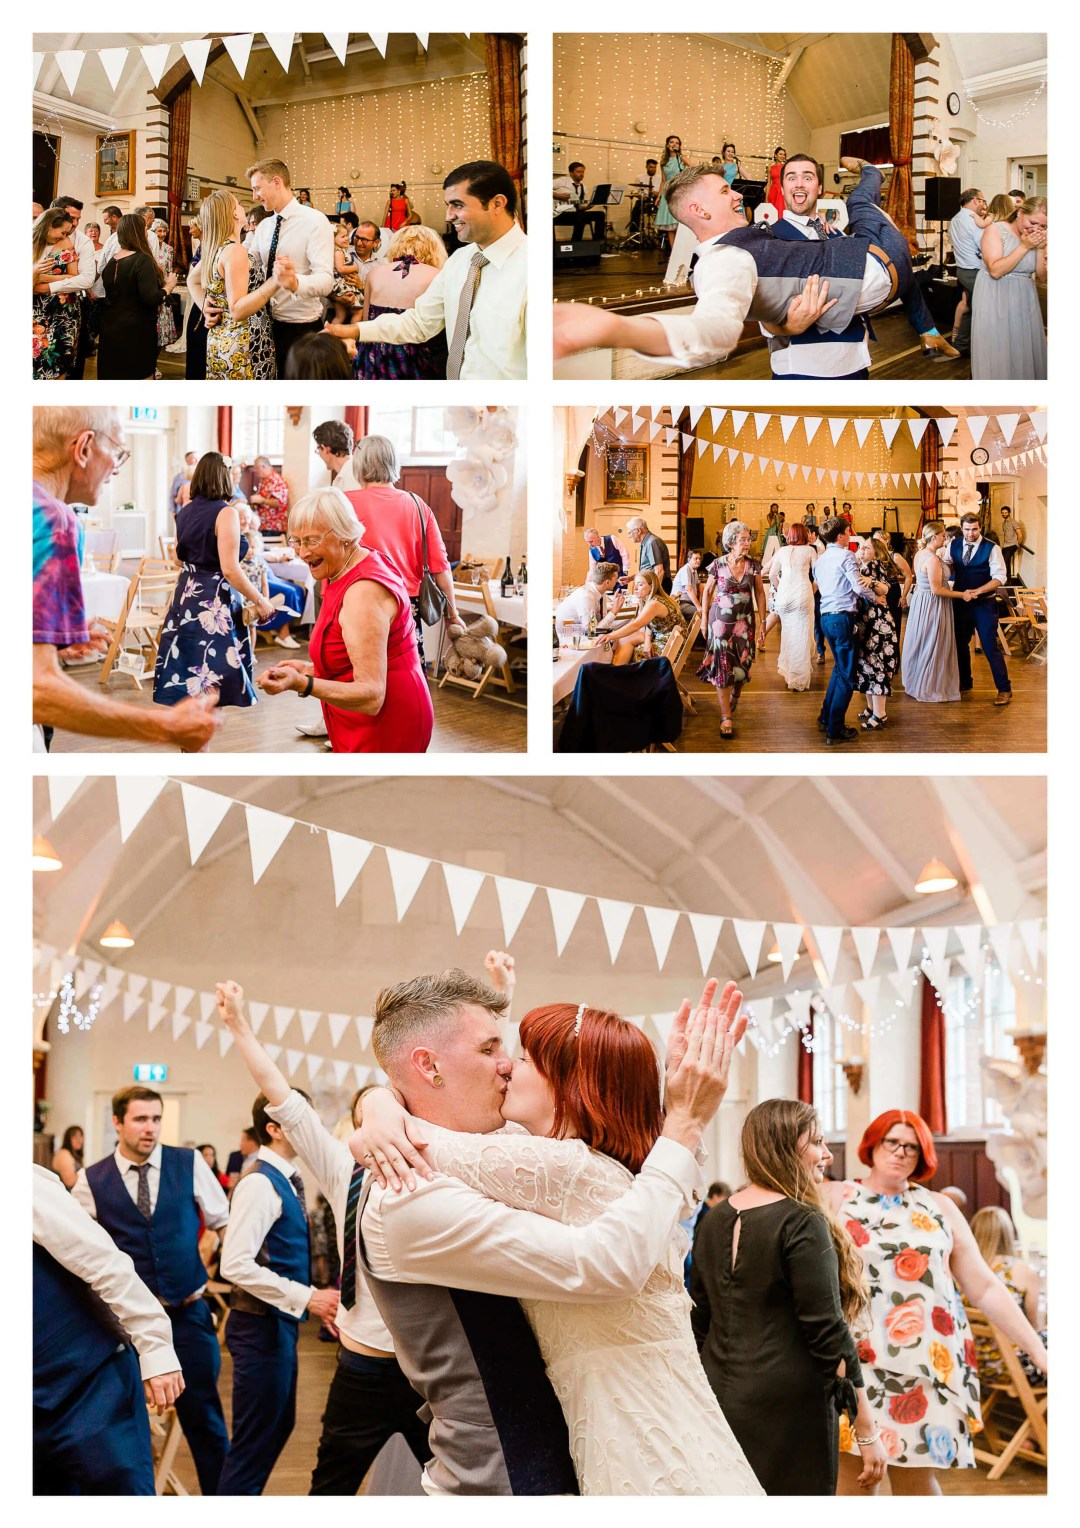 Worplesdon Memorial Hall wedding reception disco in Surrey | Guildford photographer